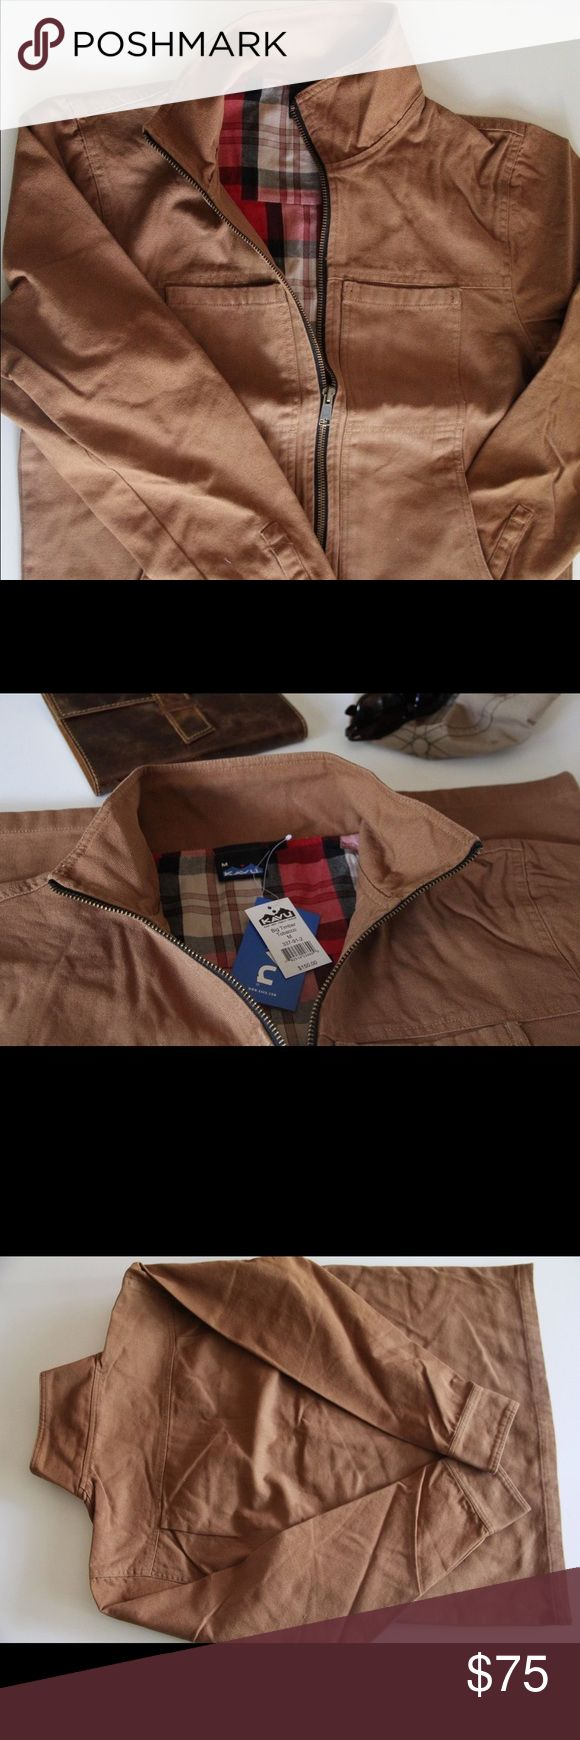 Kavu Big Timber Jacket Cotton Canvas Tobacco Color NWT!! This men's jacket is a full zip outdoor jacket made with 100% cotton canvas outer and flannel liner on the inside. It has a stand collar, front chest pockets, and lower pouch patch pockets, adjustable sleeve cuffs with snaps, and a straight hem. Large brass zipper. Kavu Jackets & Coats Military & Field